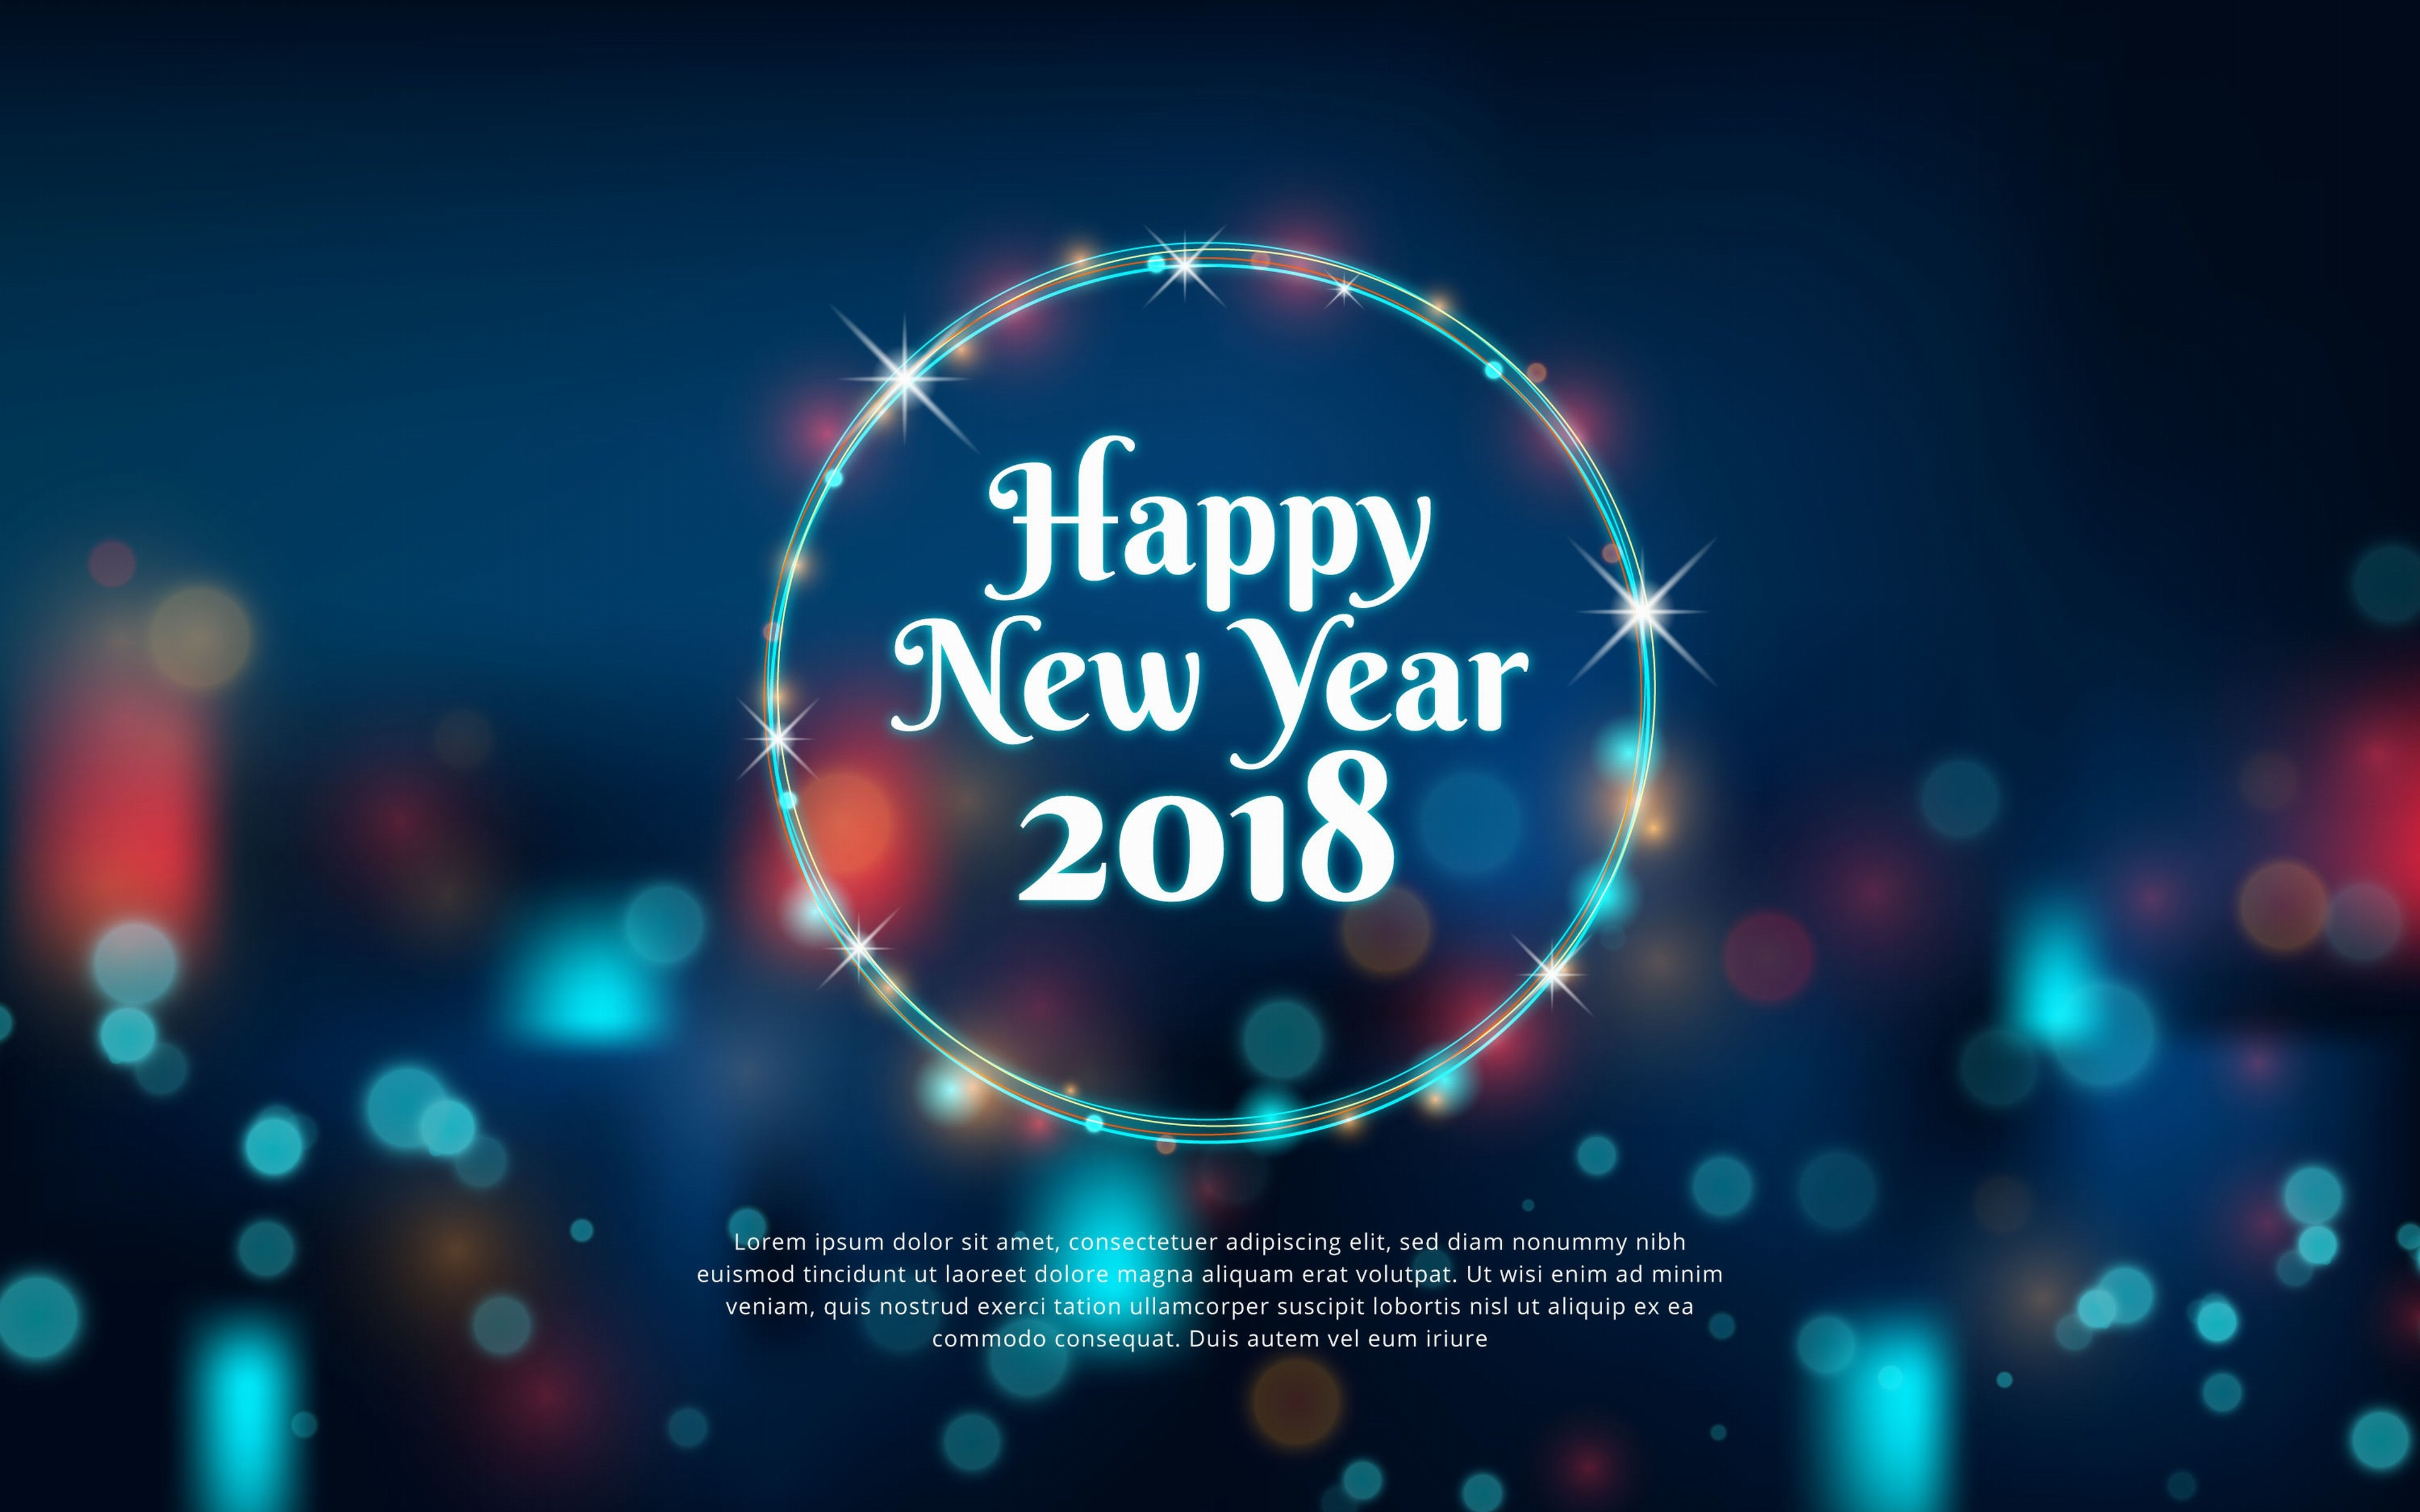 Free download Year 2018 Full HD Wallpaper Download For Happy New